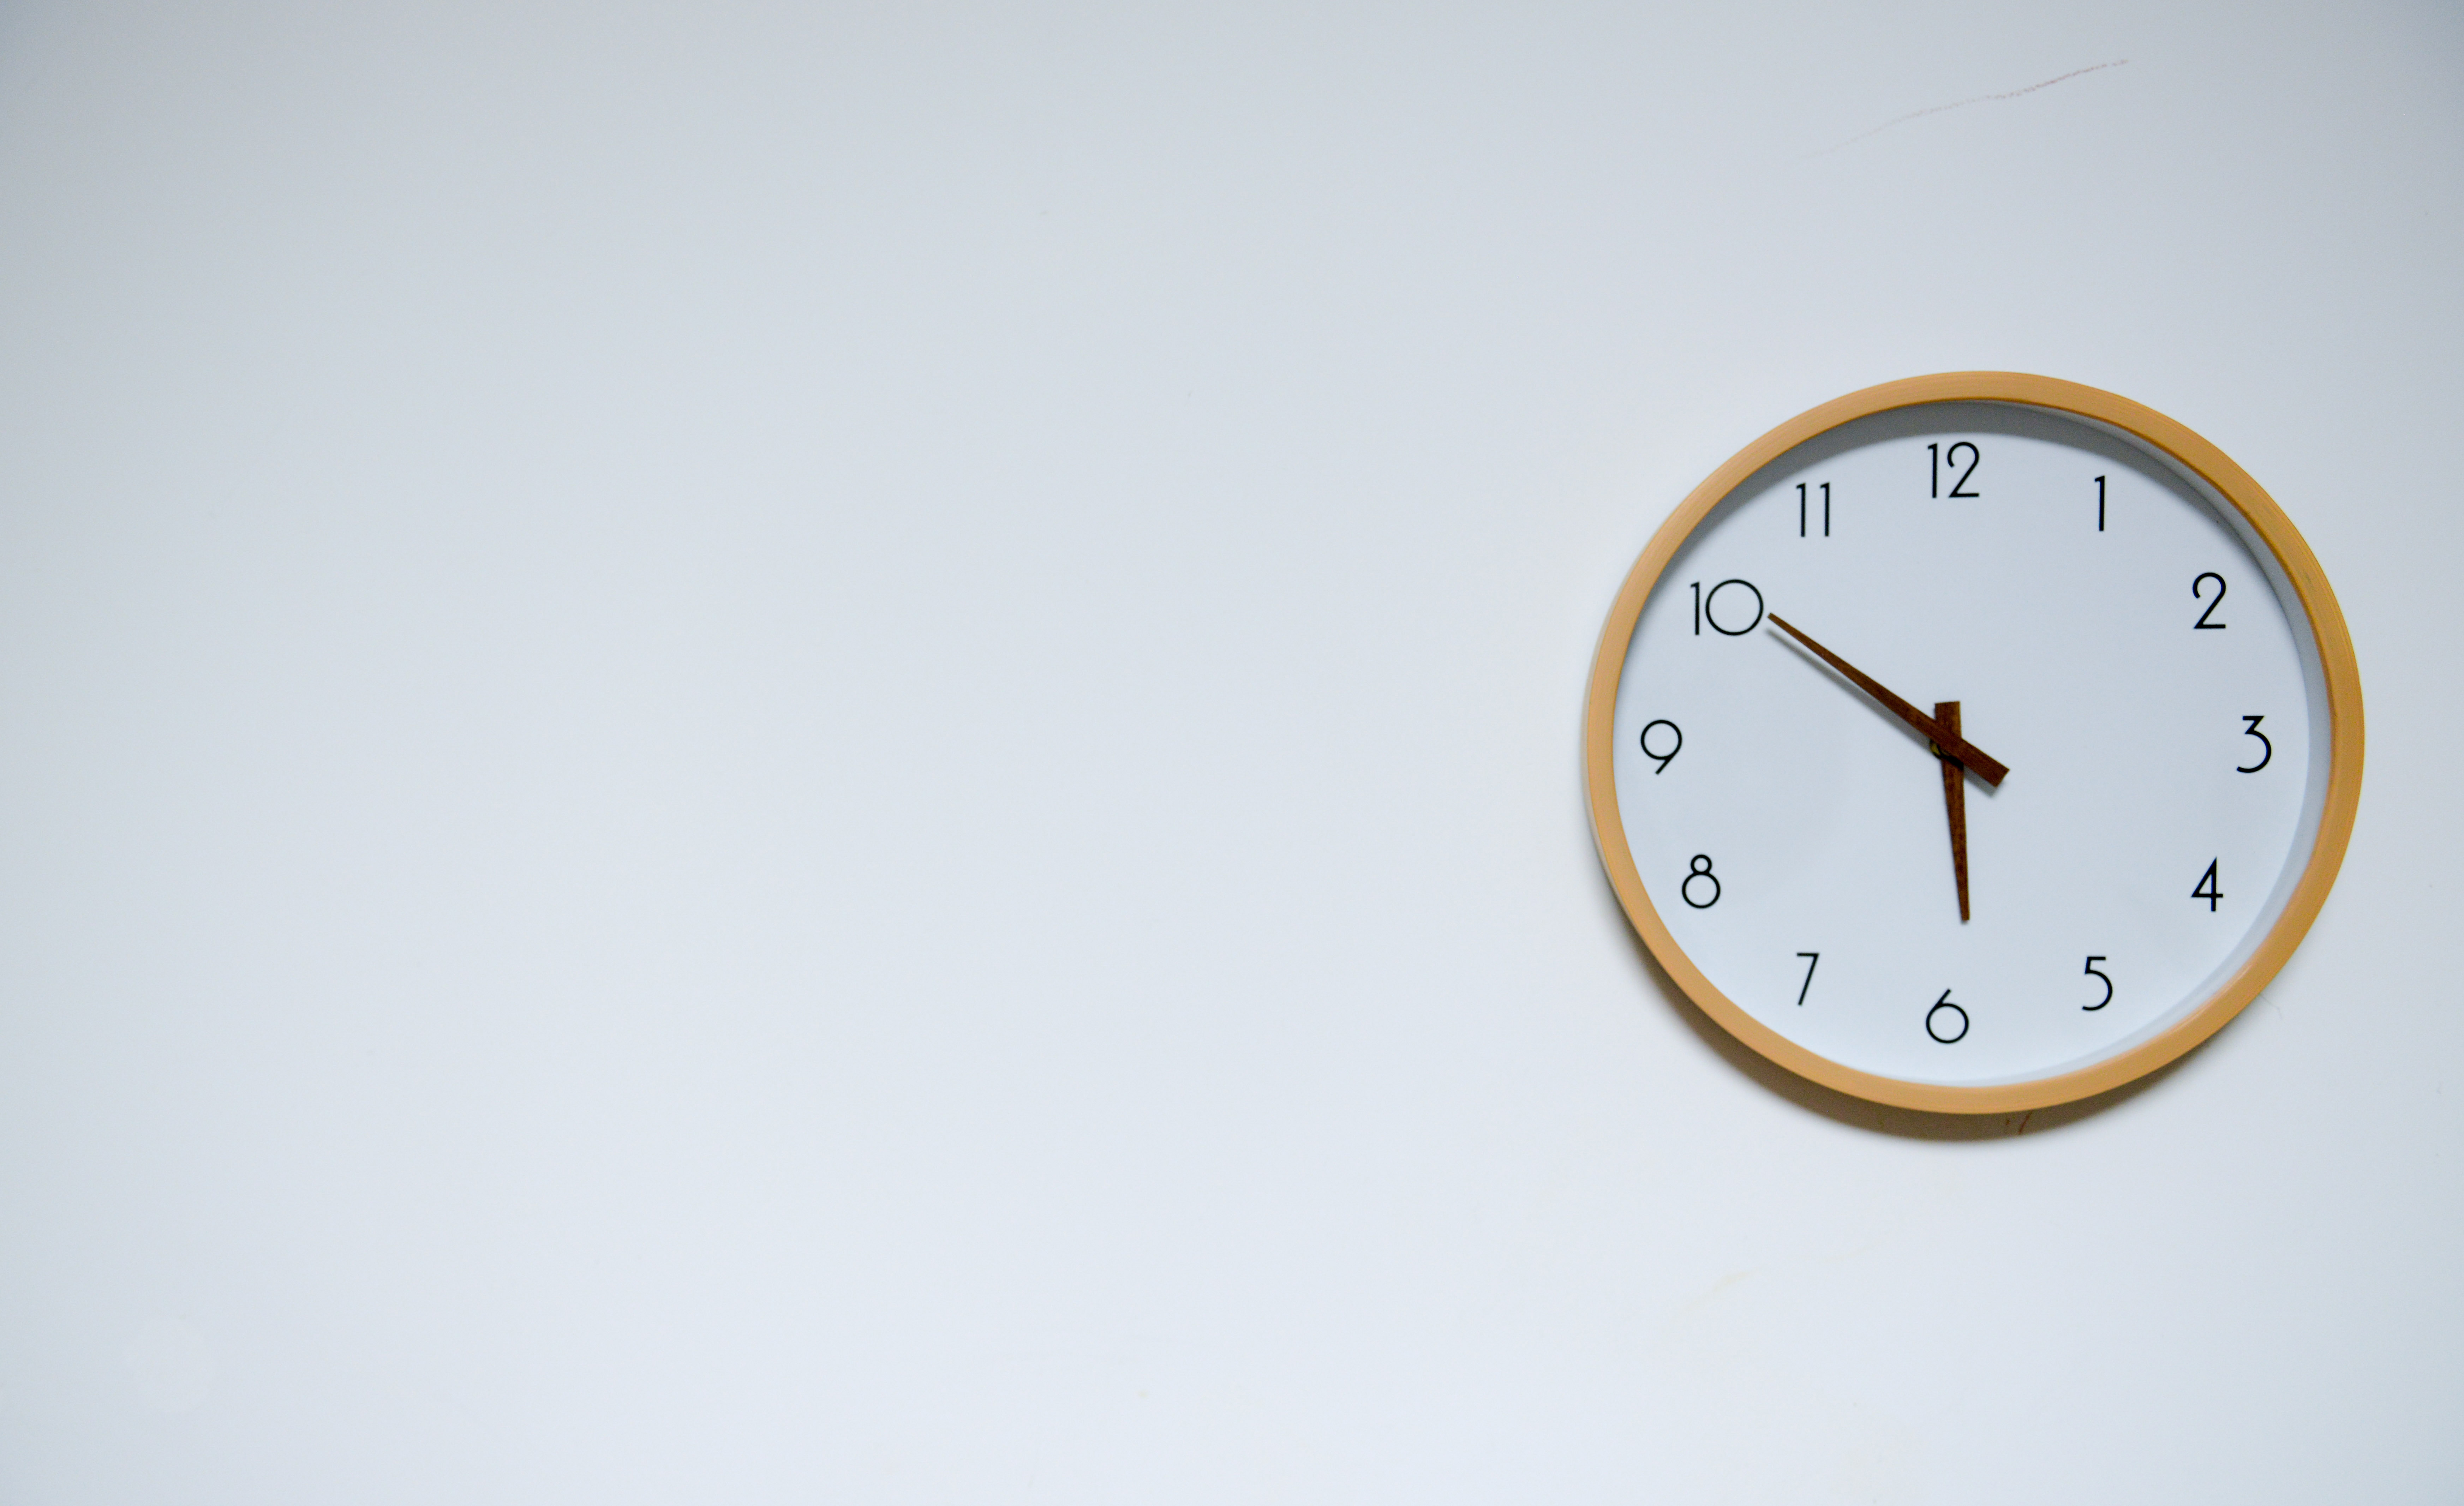 Wall Clock, HD Others, 4k Wallpapers, Images, Backgrounds